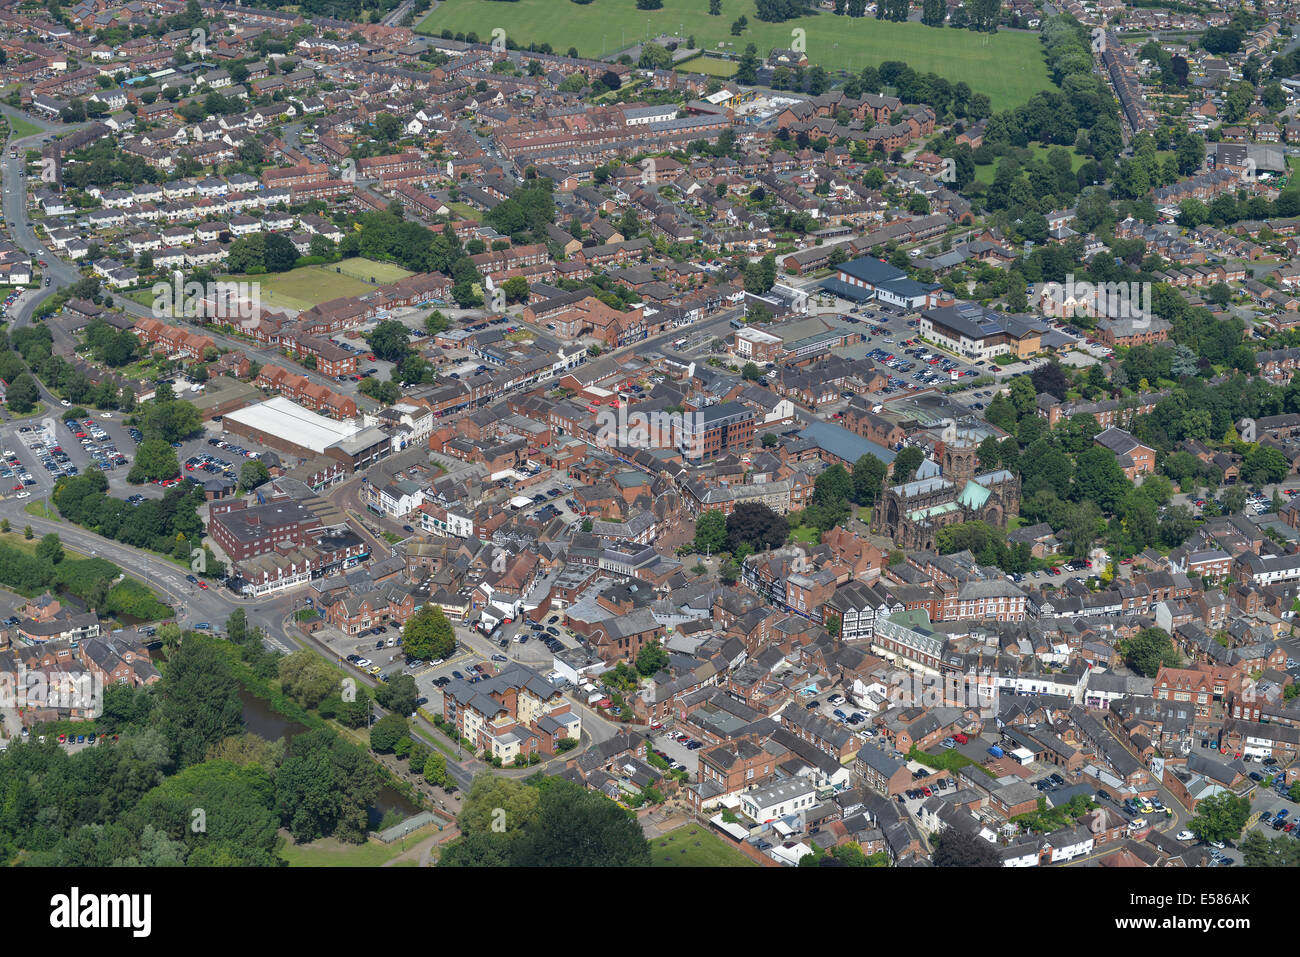 An aerial image showing the town centre of Nantwich in Cheshire, UK - Stock Image